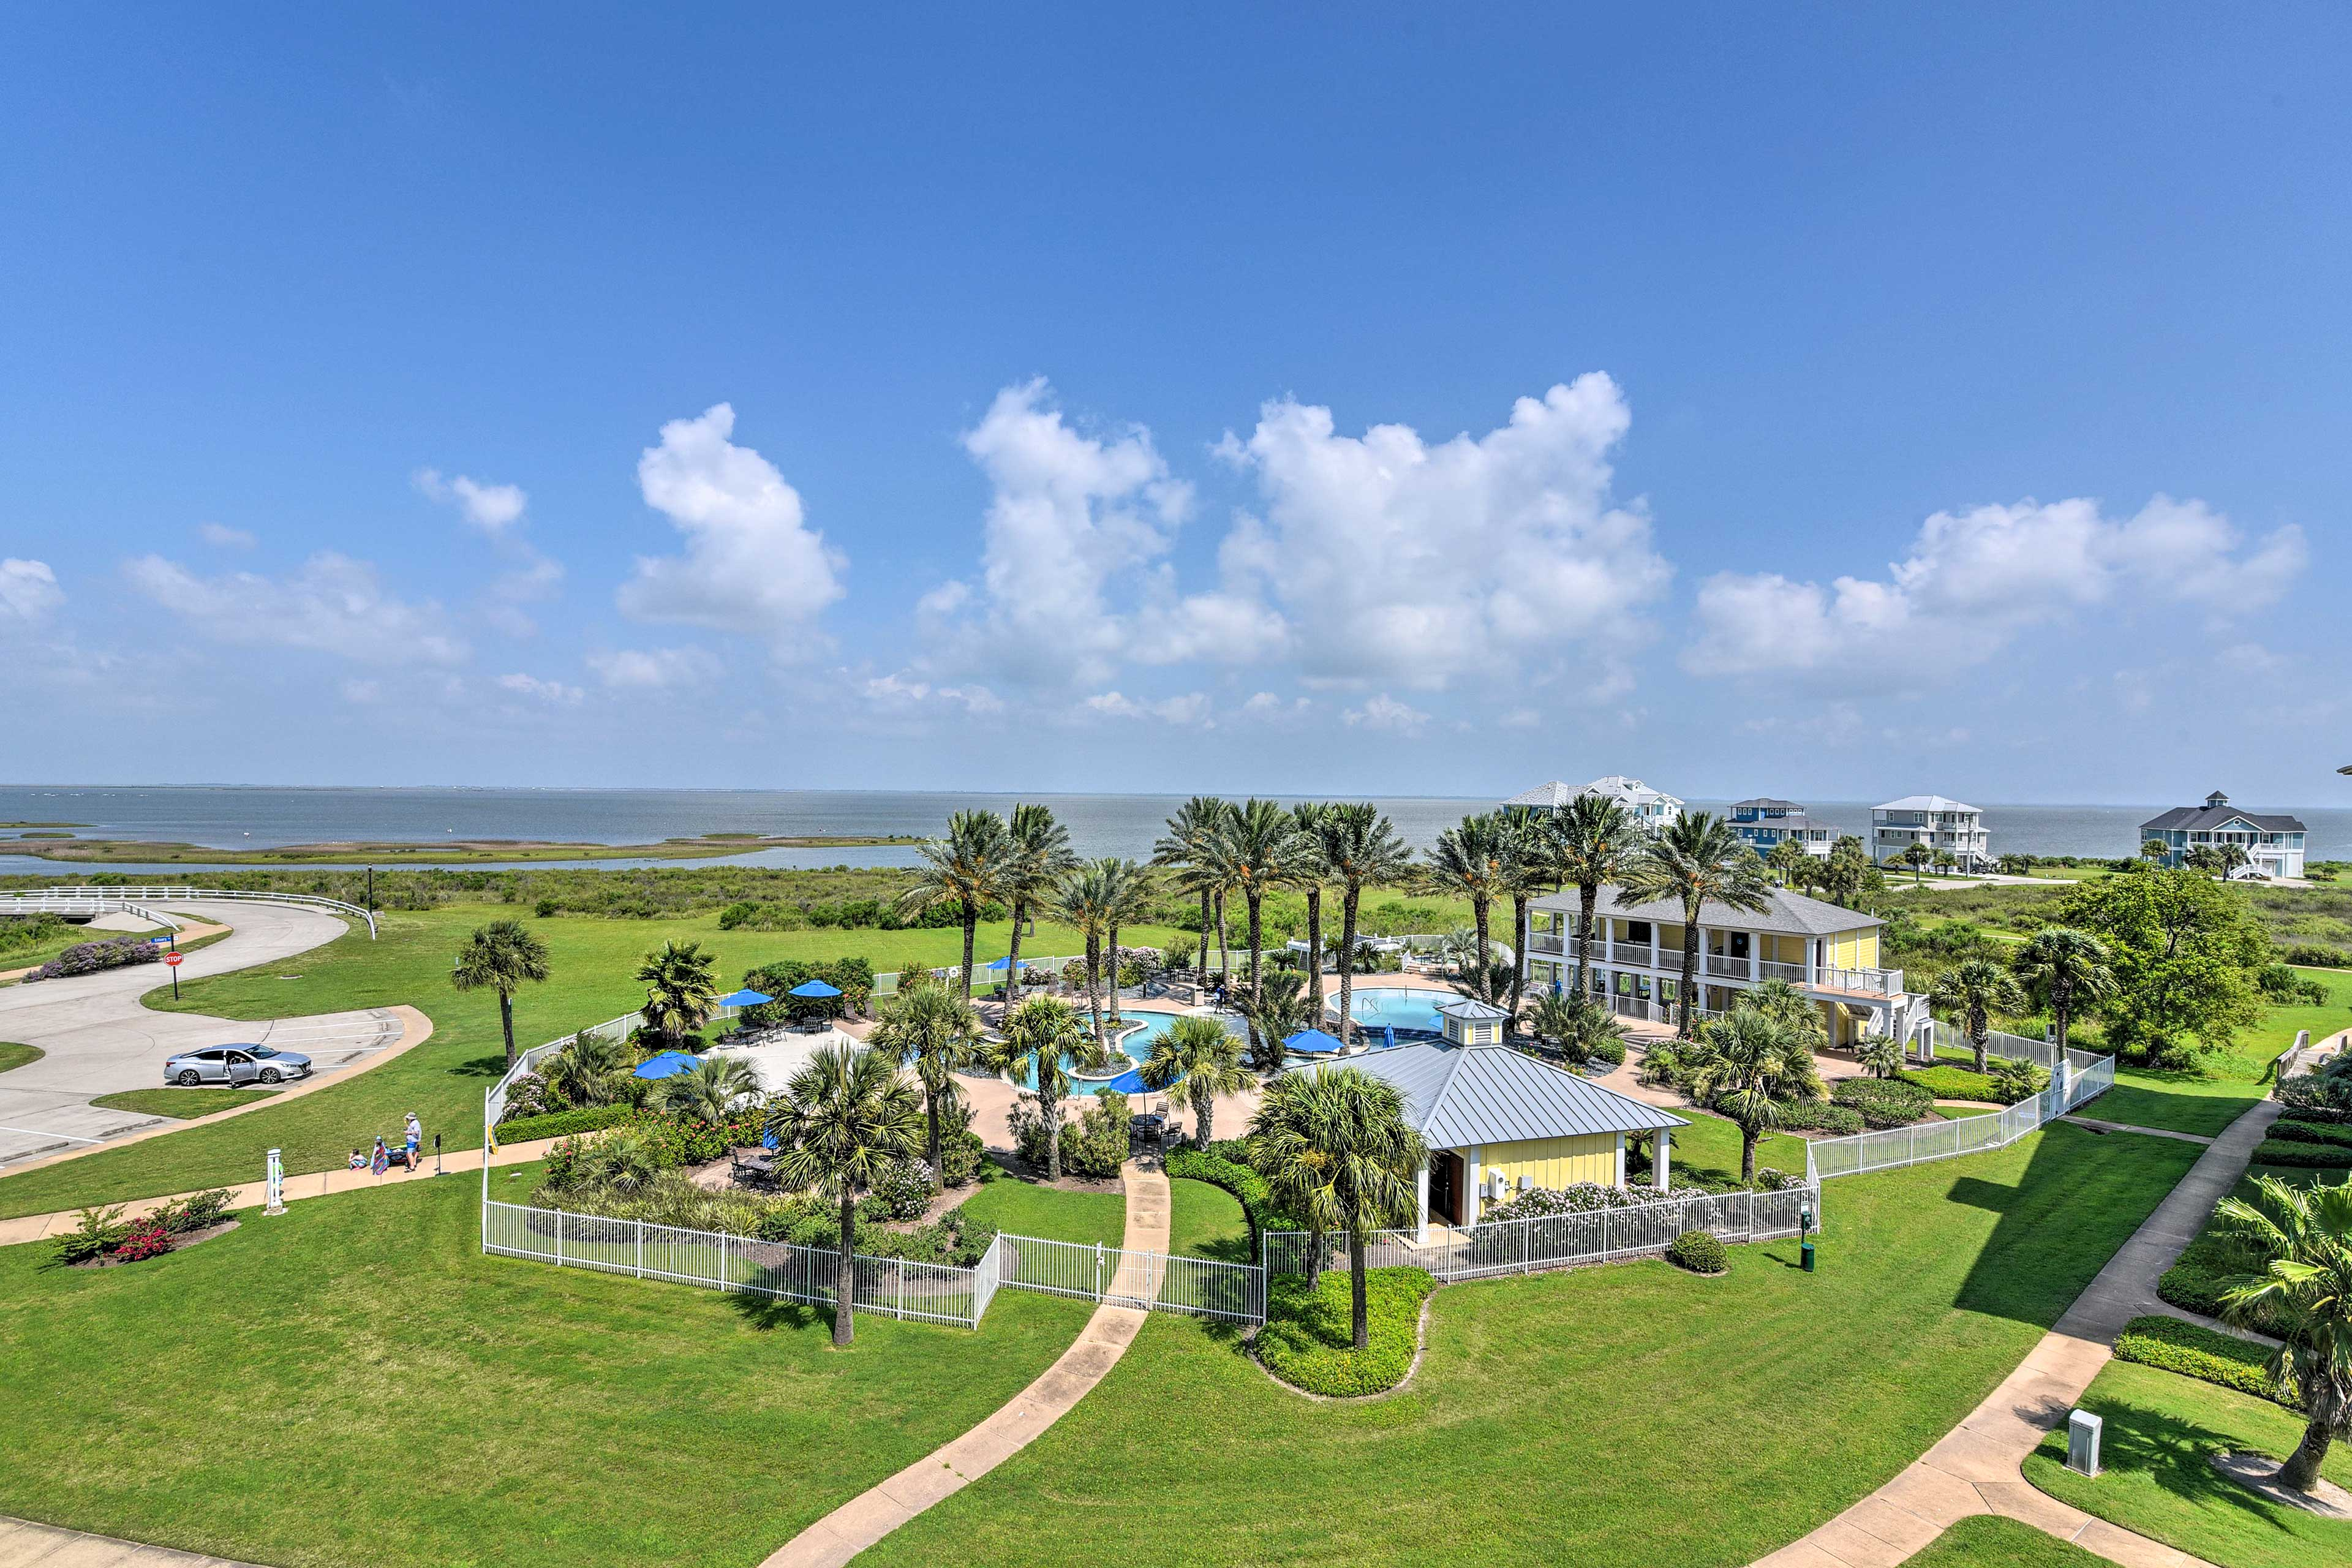 Make the most of this prime location just a 10-minute walk from the beach.